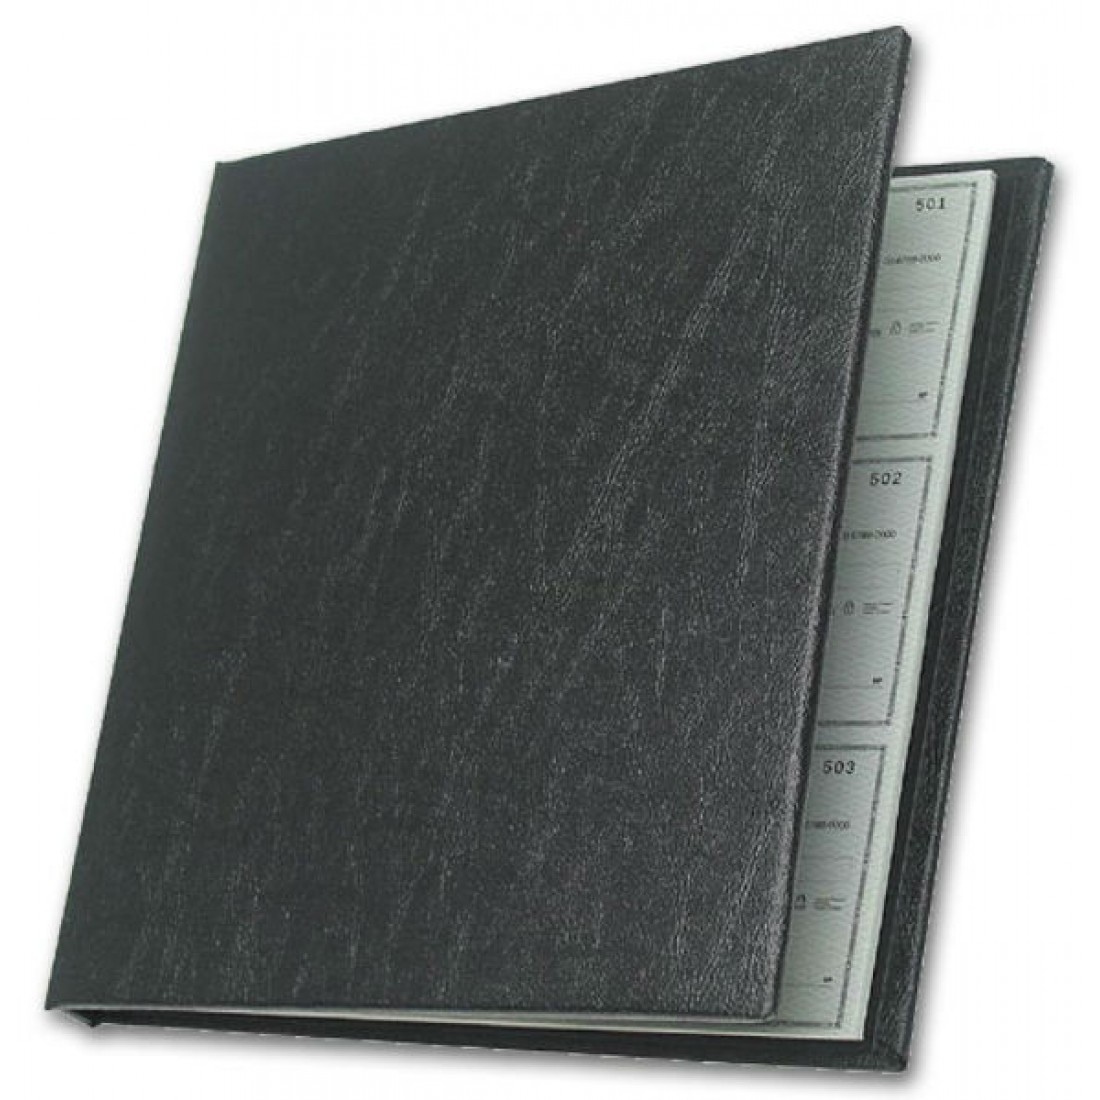 Vinyl Check Cover (54032N) - Check Binders & Covers  - Business Checks